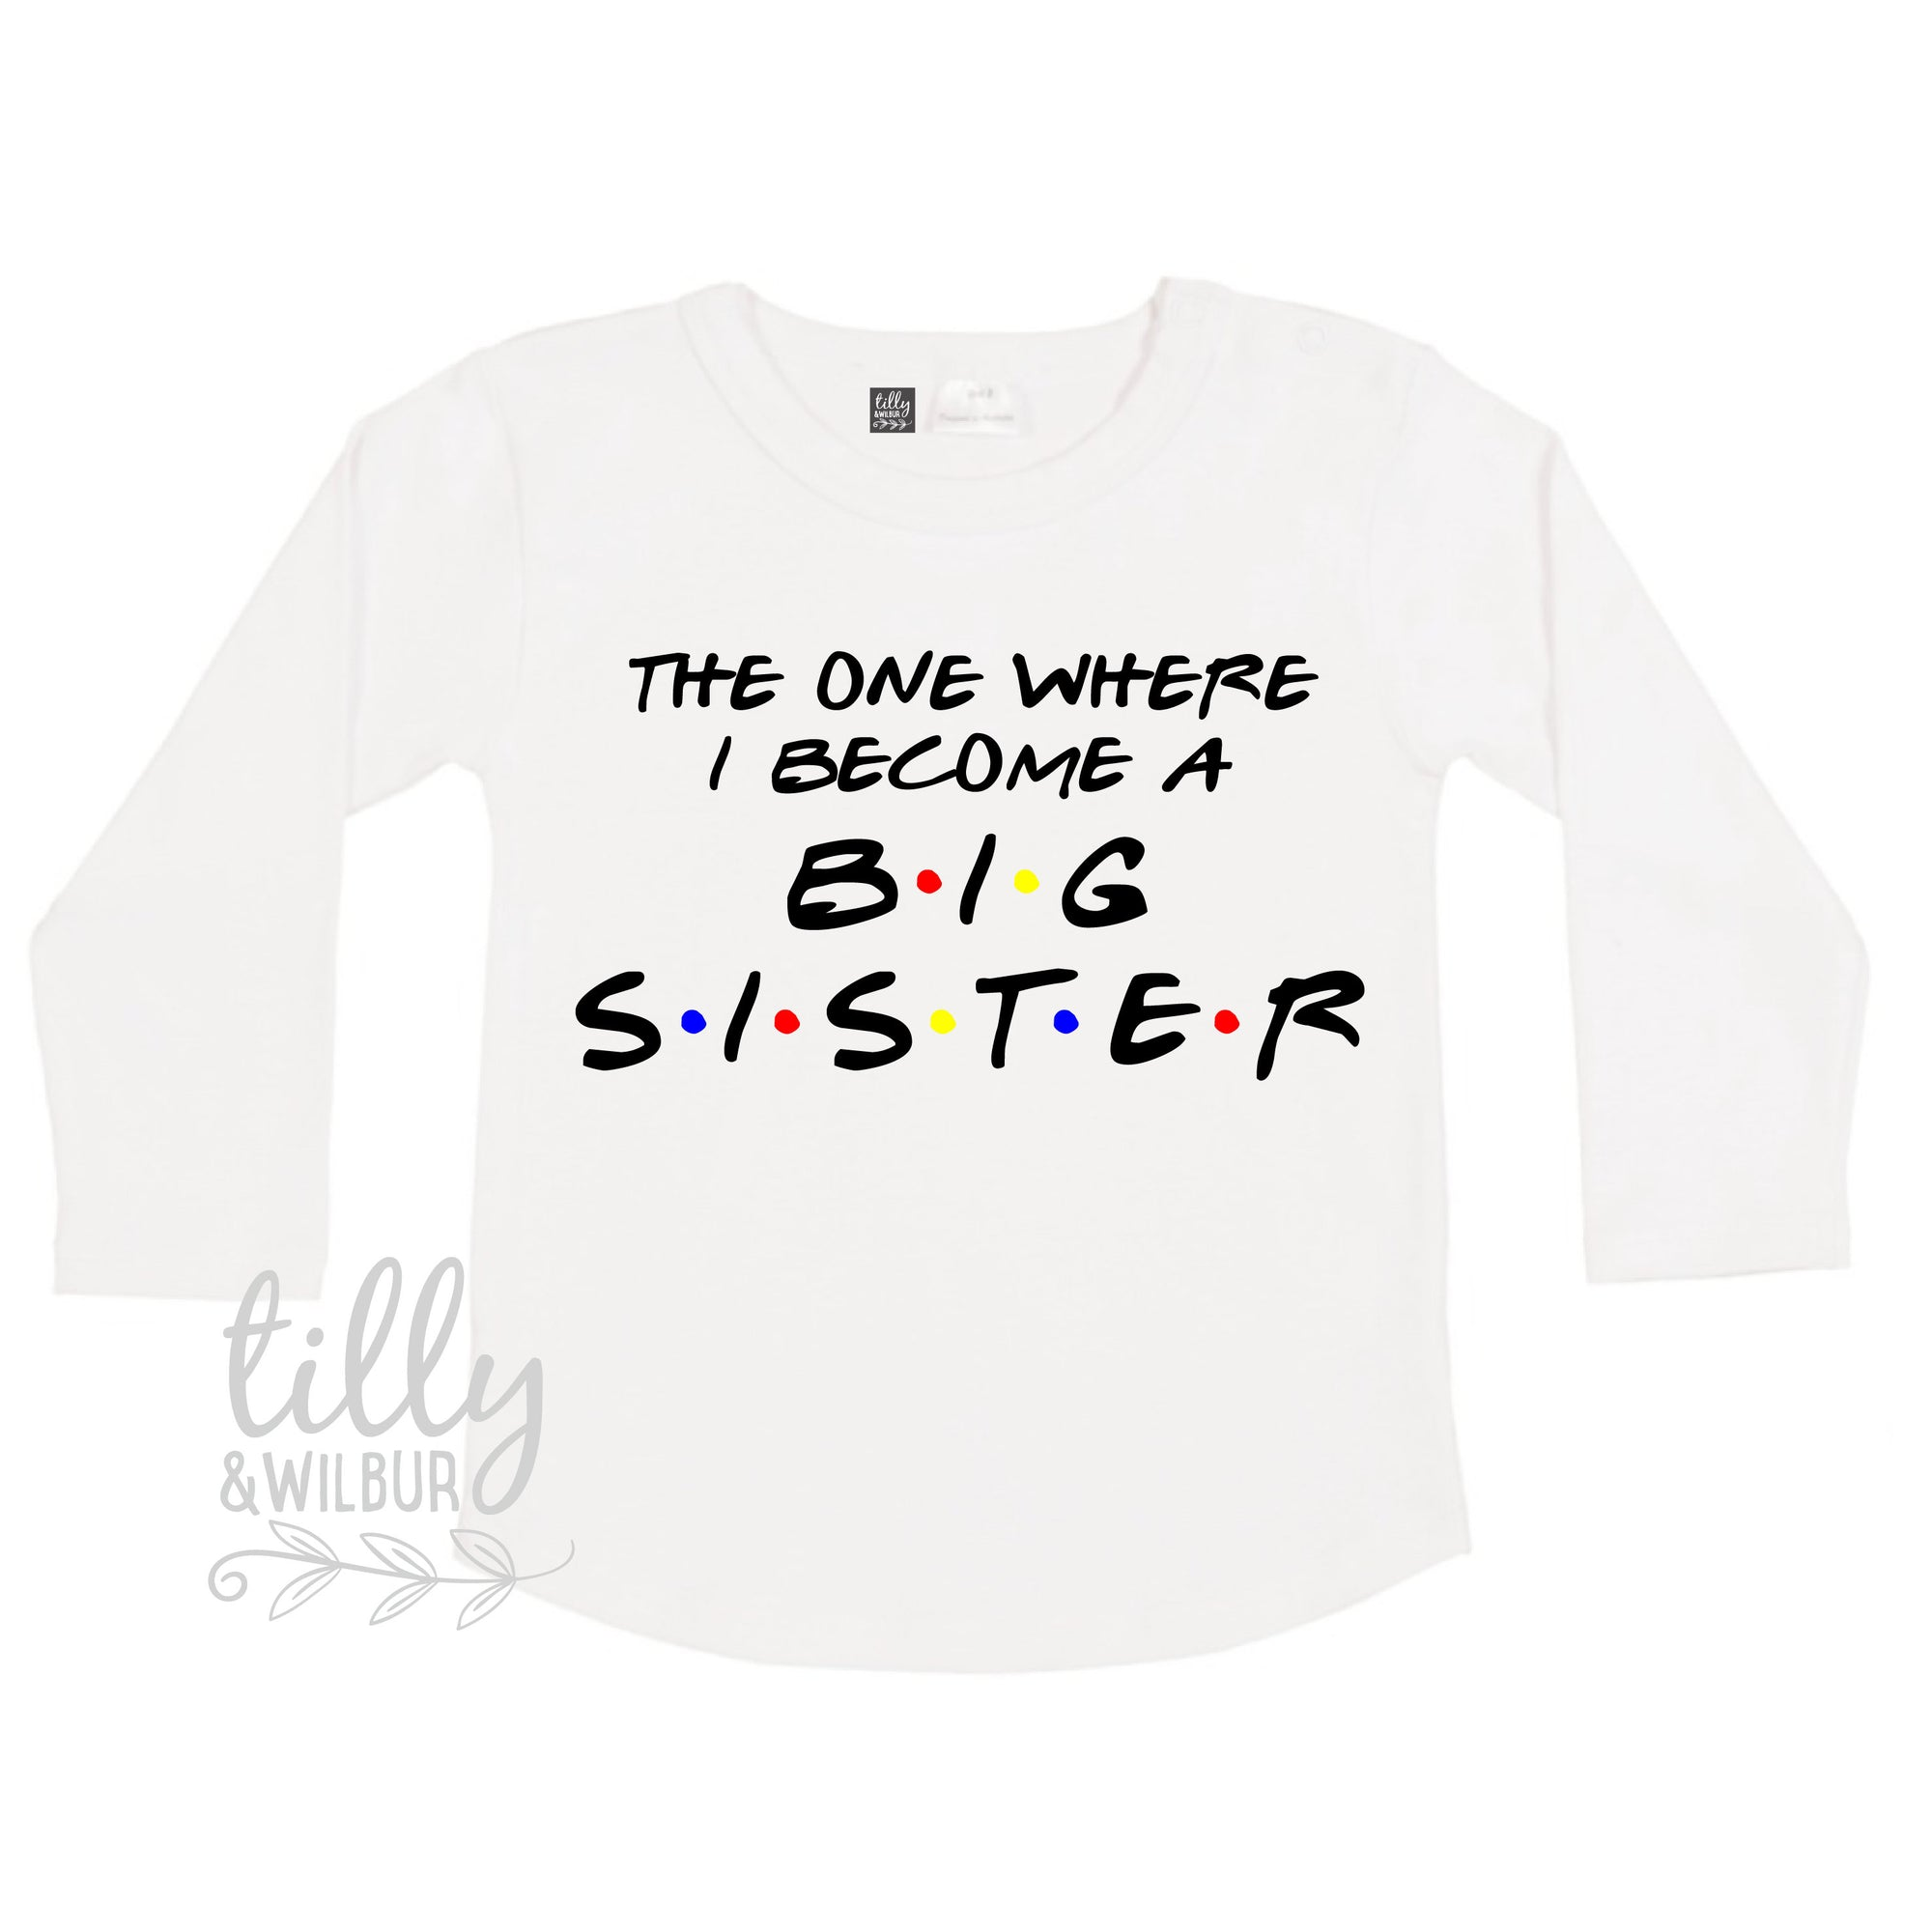 The One Where I Become A Big Sister T-Shirt, Big Sister Friends T-Shirt, I'm Going To Be A Big Sister T-Shirt, Pregnancy Announcement TShirt